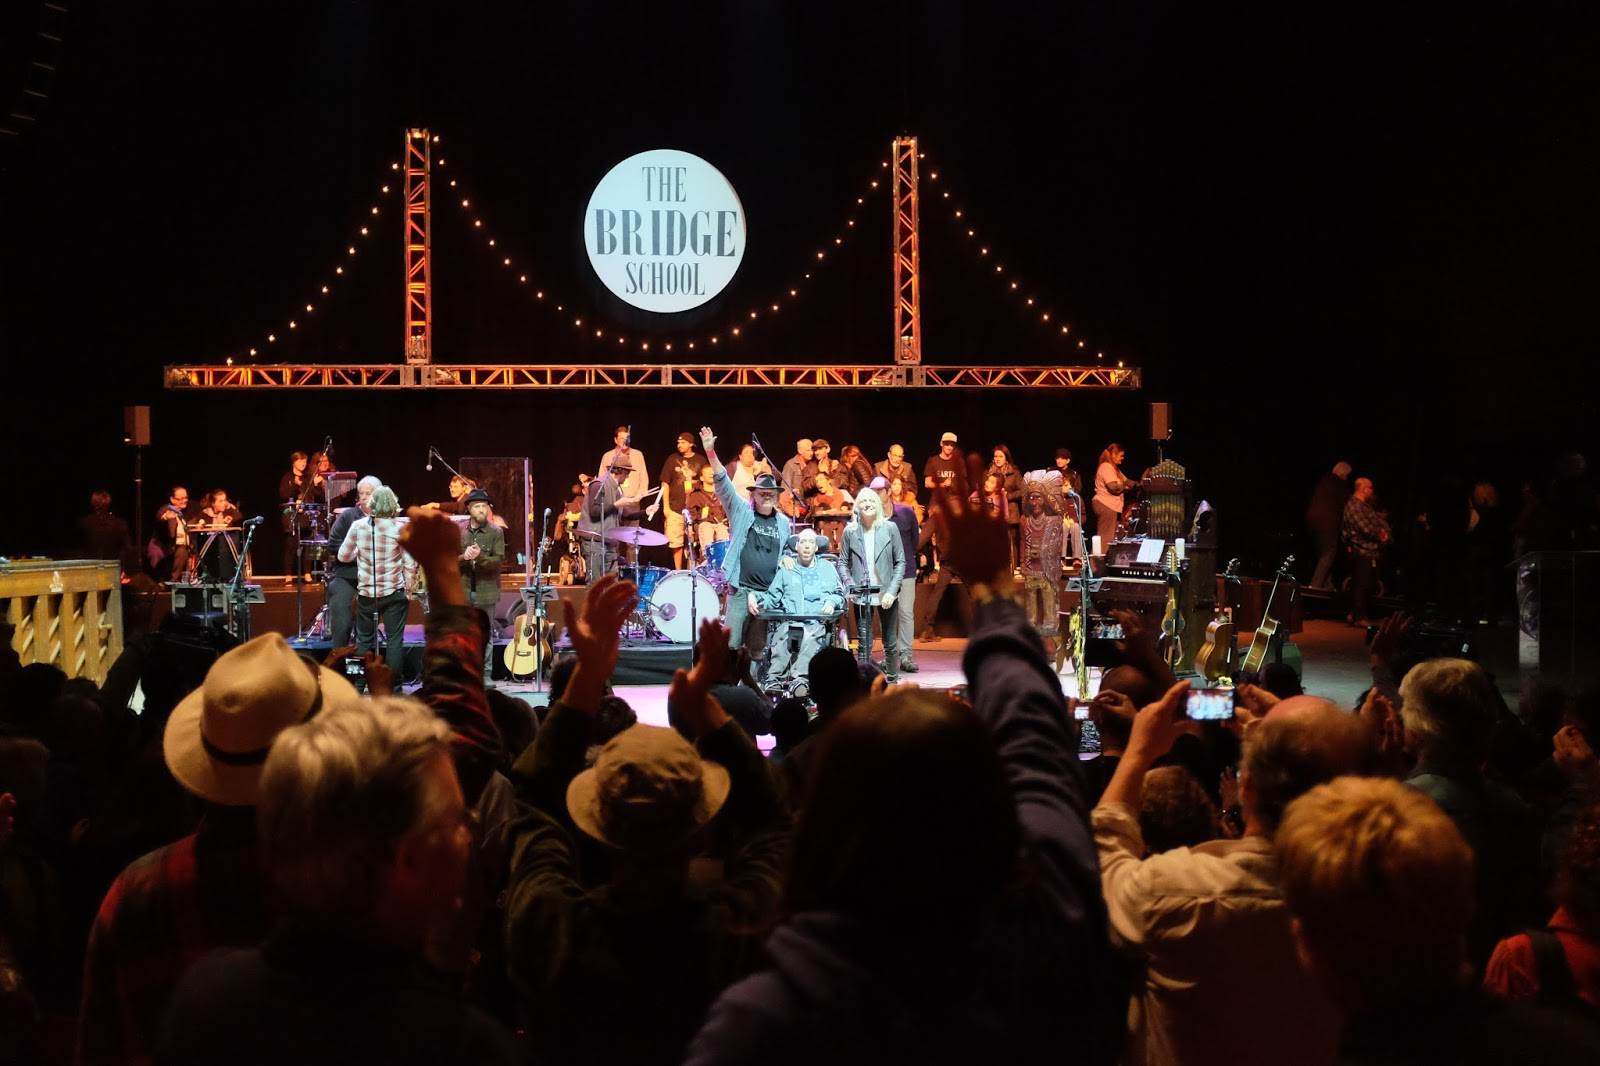 Neil and Pegi Young Announce No Bridge School Concert This ...